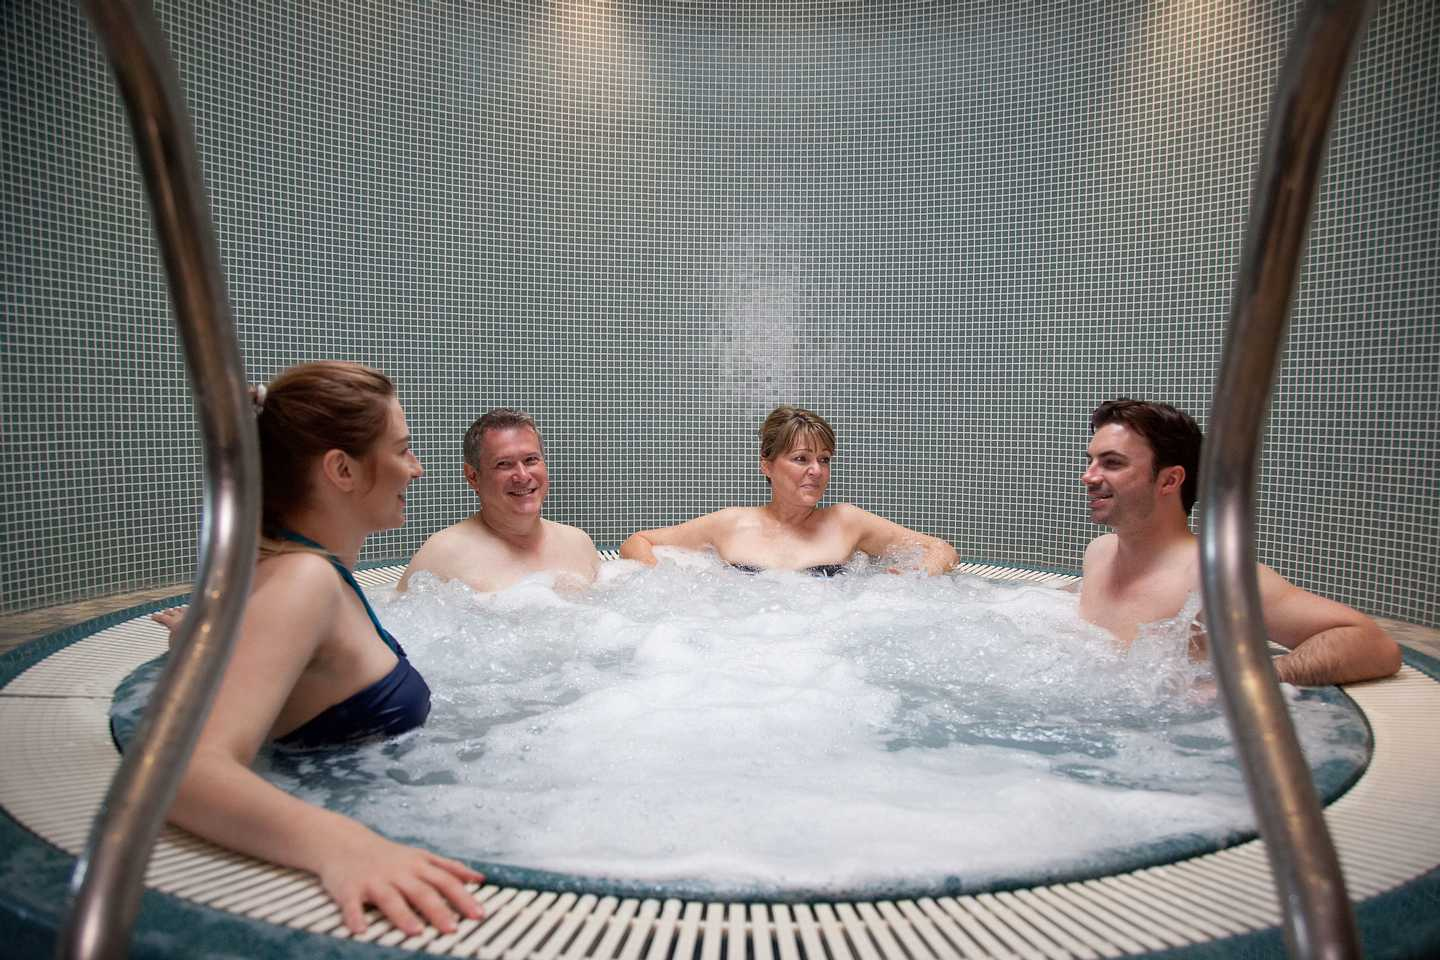 Owners relaxing in the bubble pool